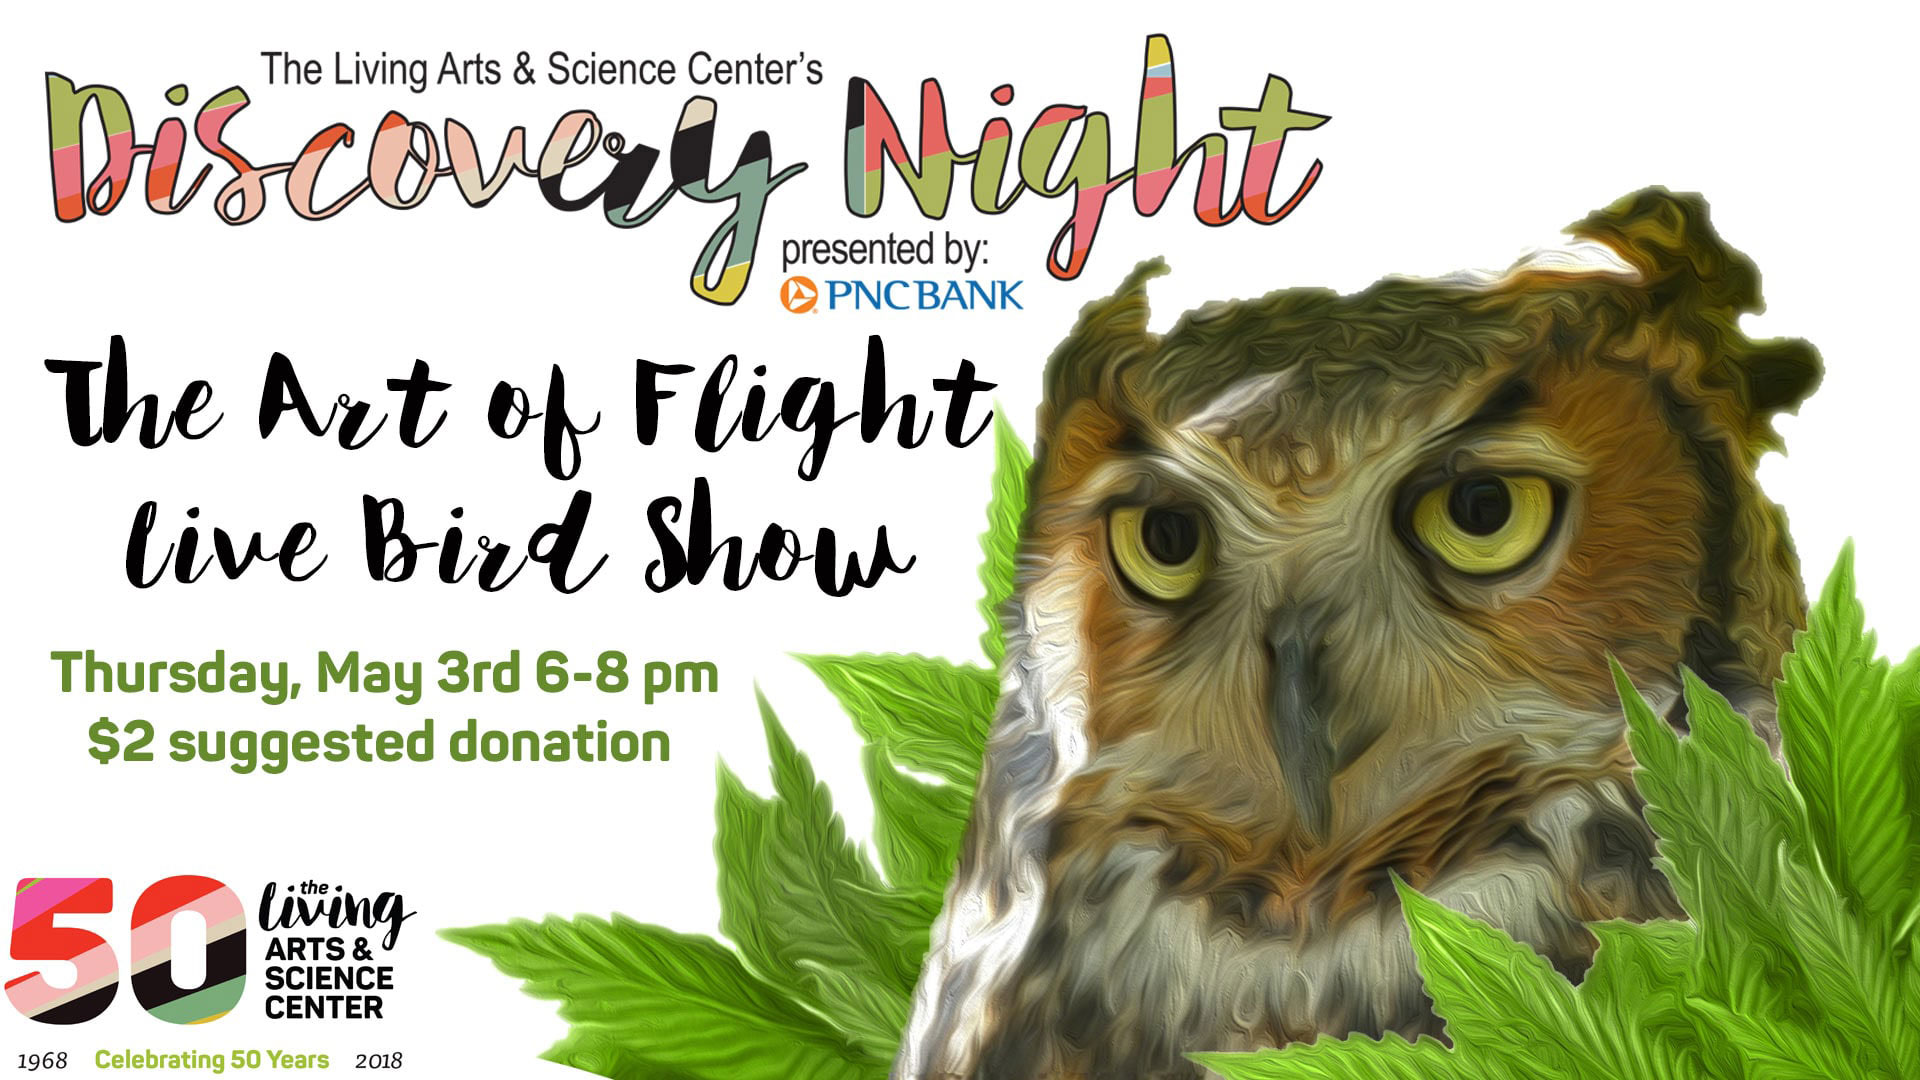 Discovery Night: The Art of Flight, Live Bird Show